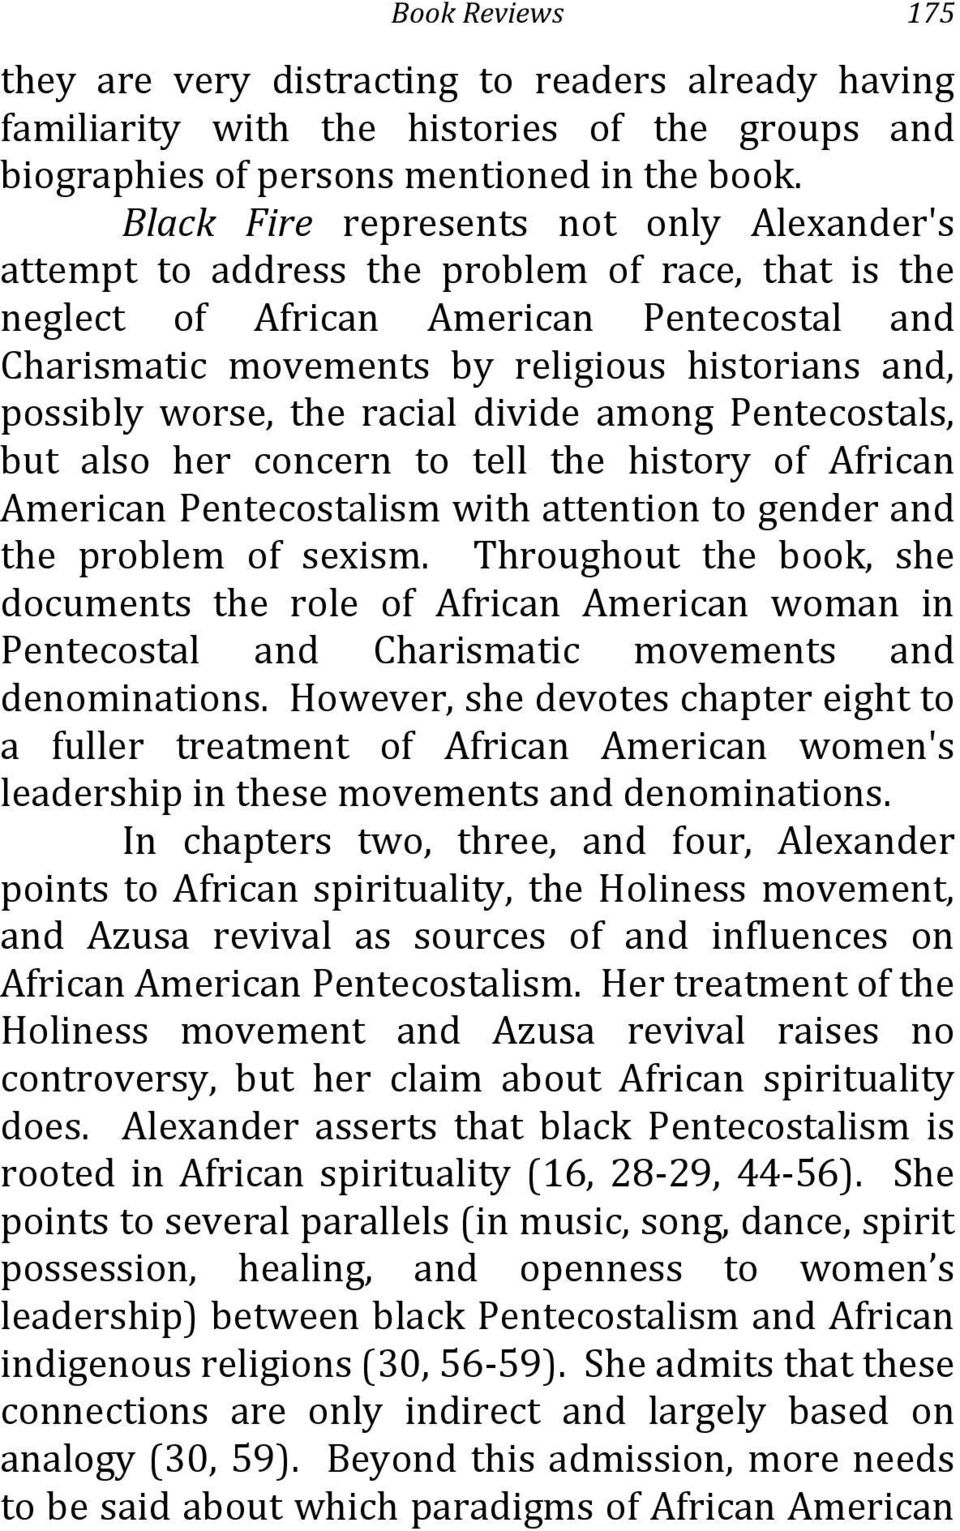 worse, the racial divide among Pentecostals, but also her concern to tell the history of African American Pentecostalism with attention to gender and the problem of sexism.